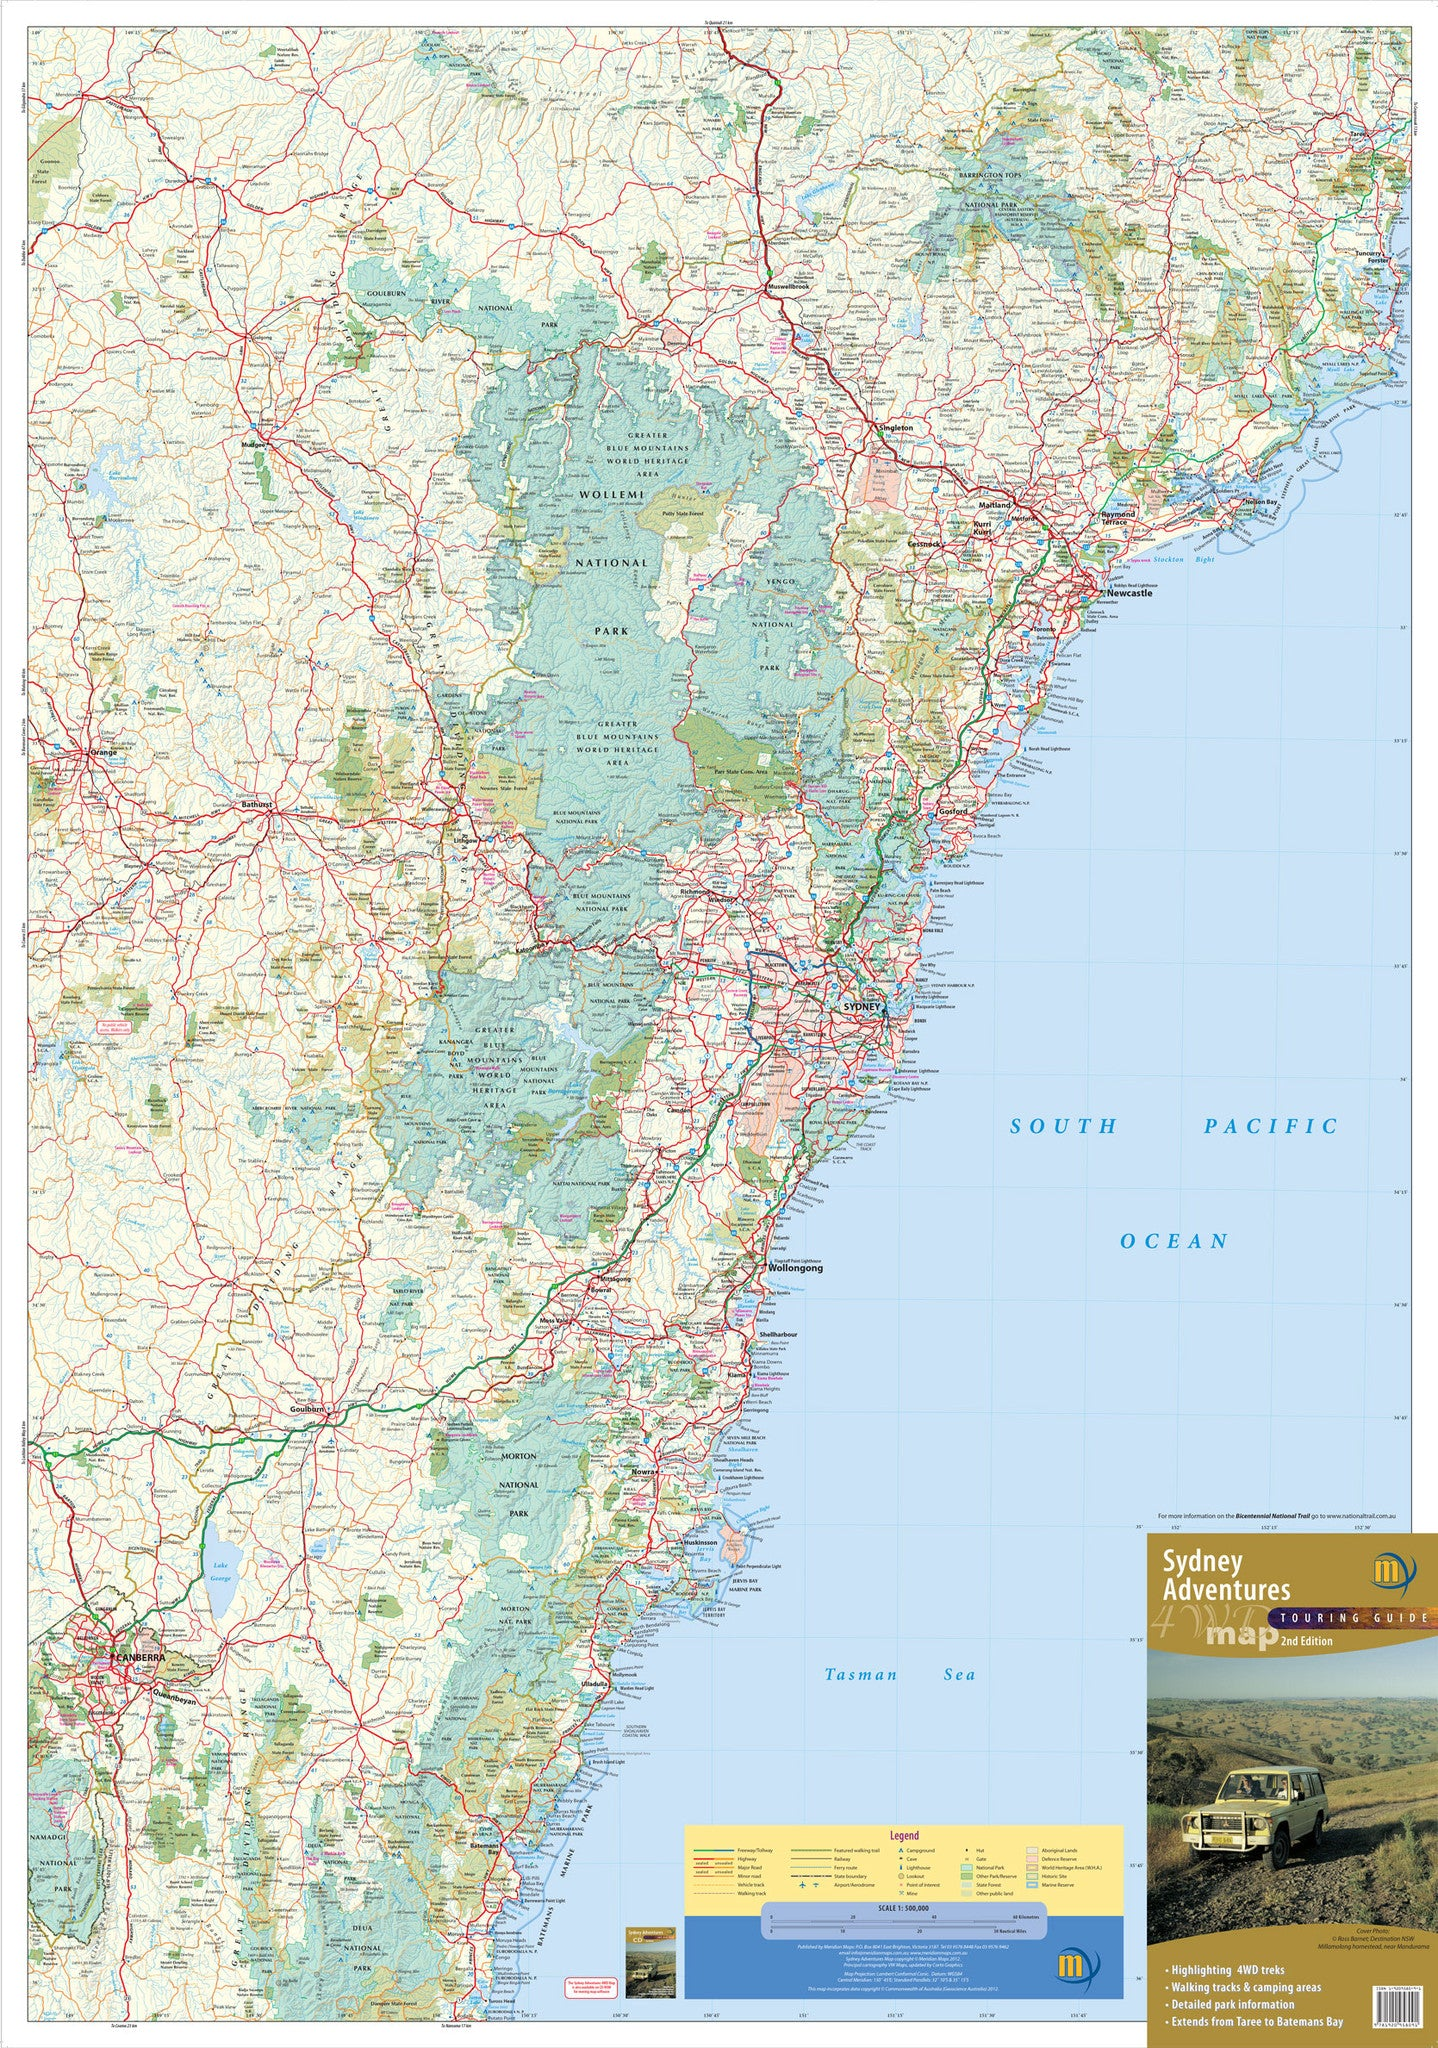 Sydney adventures 4wd map buy 4wd map for sydney mapworld sydney adventures 4wd meridian map sydney adventures 4wd meridian map gumiabroncs Images